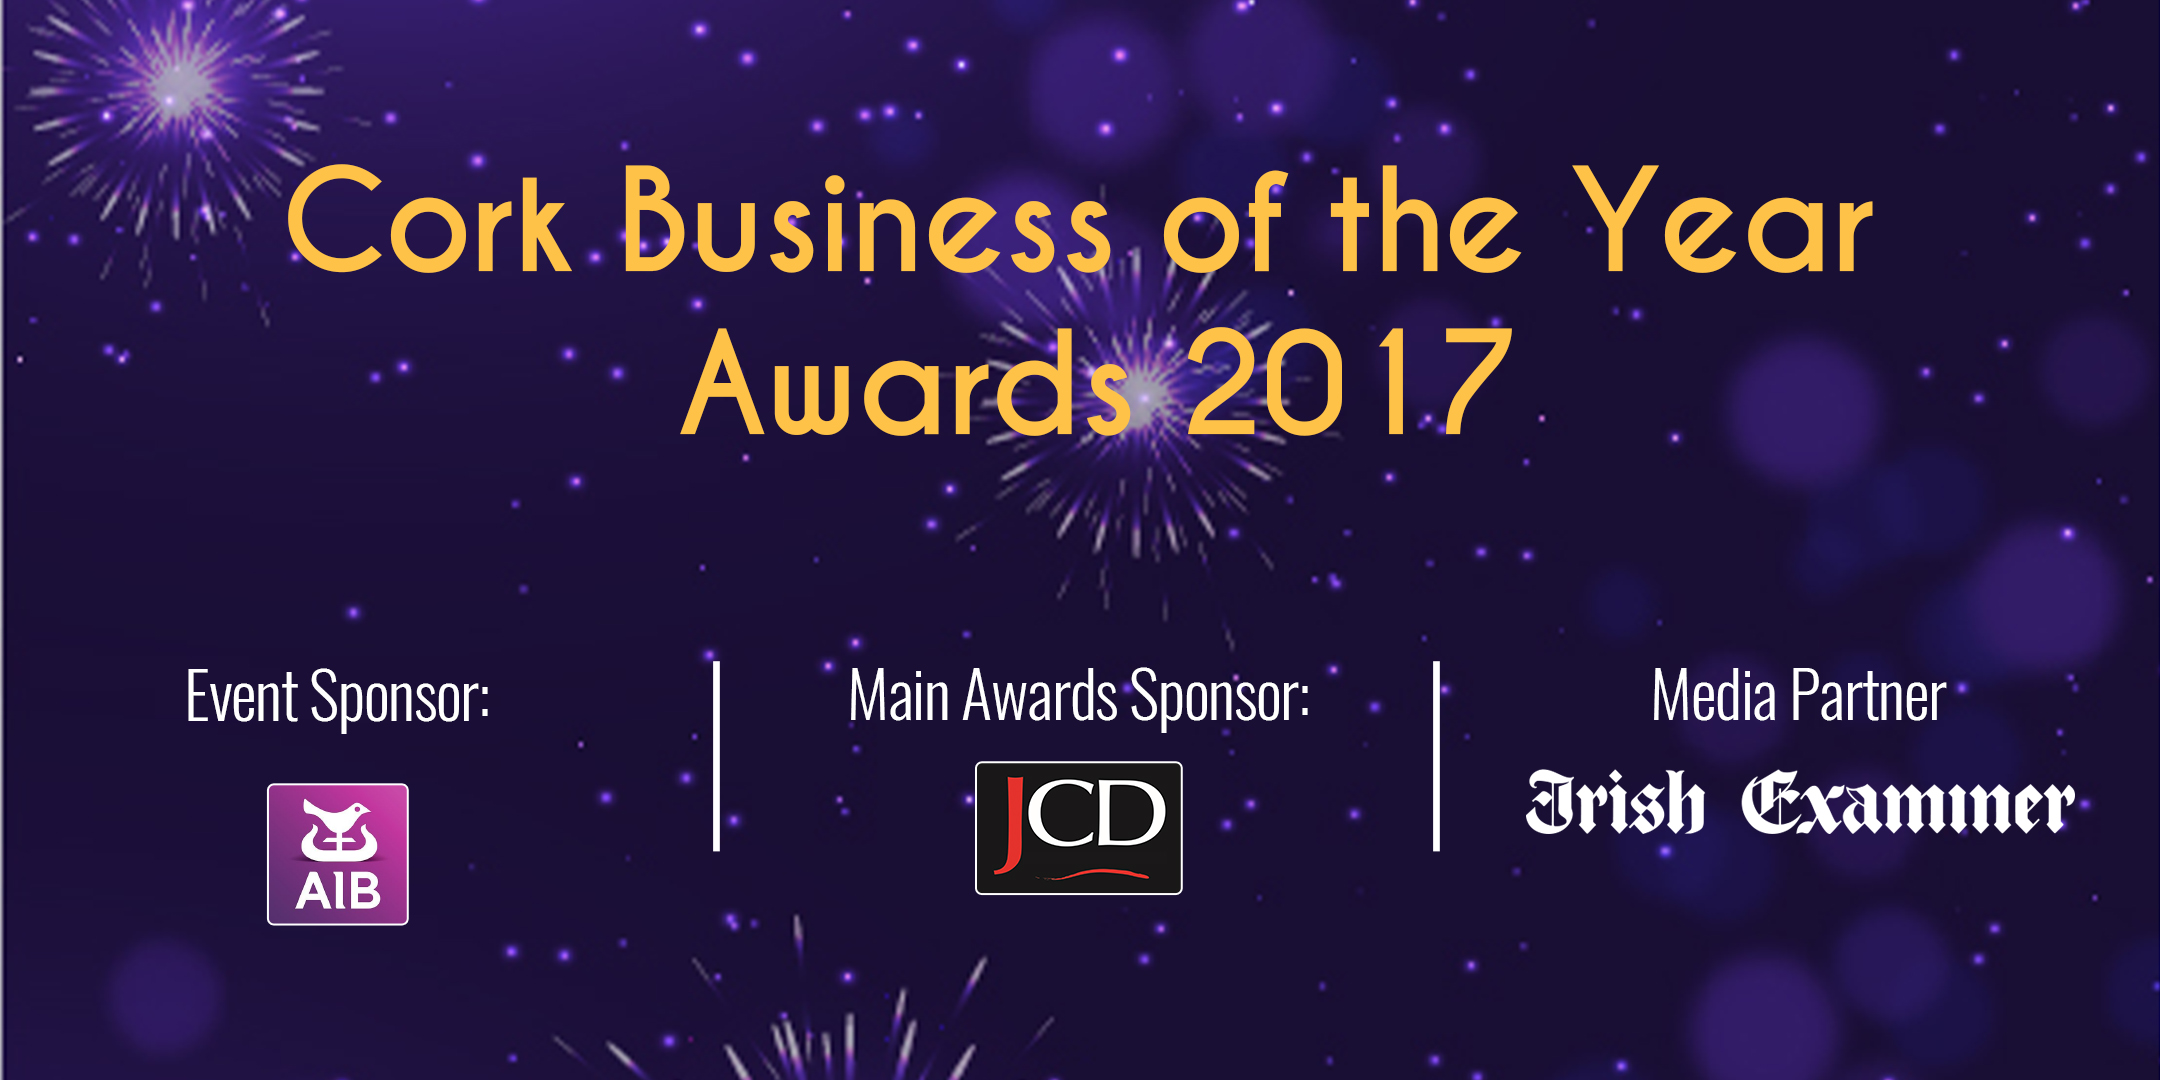 Cork Business of the year Awards 2017